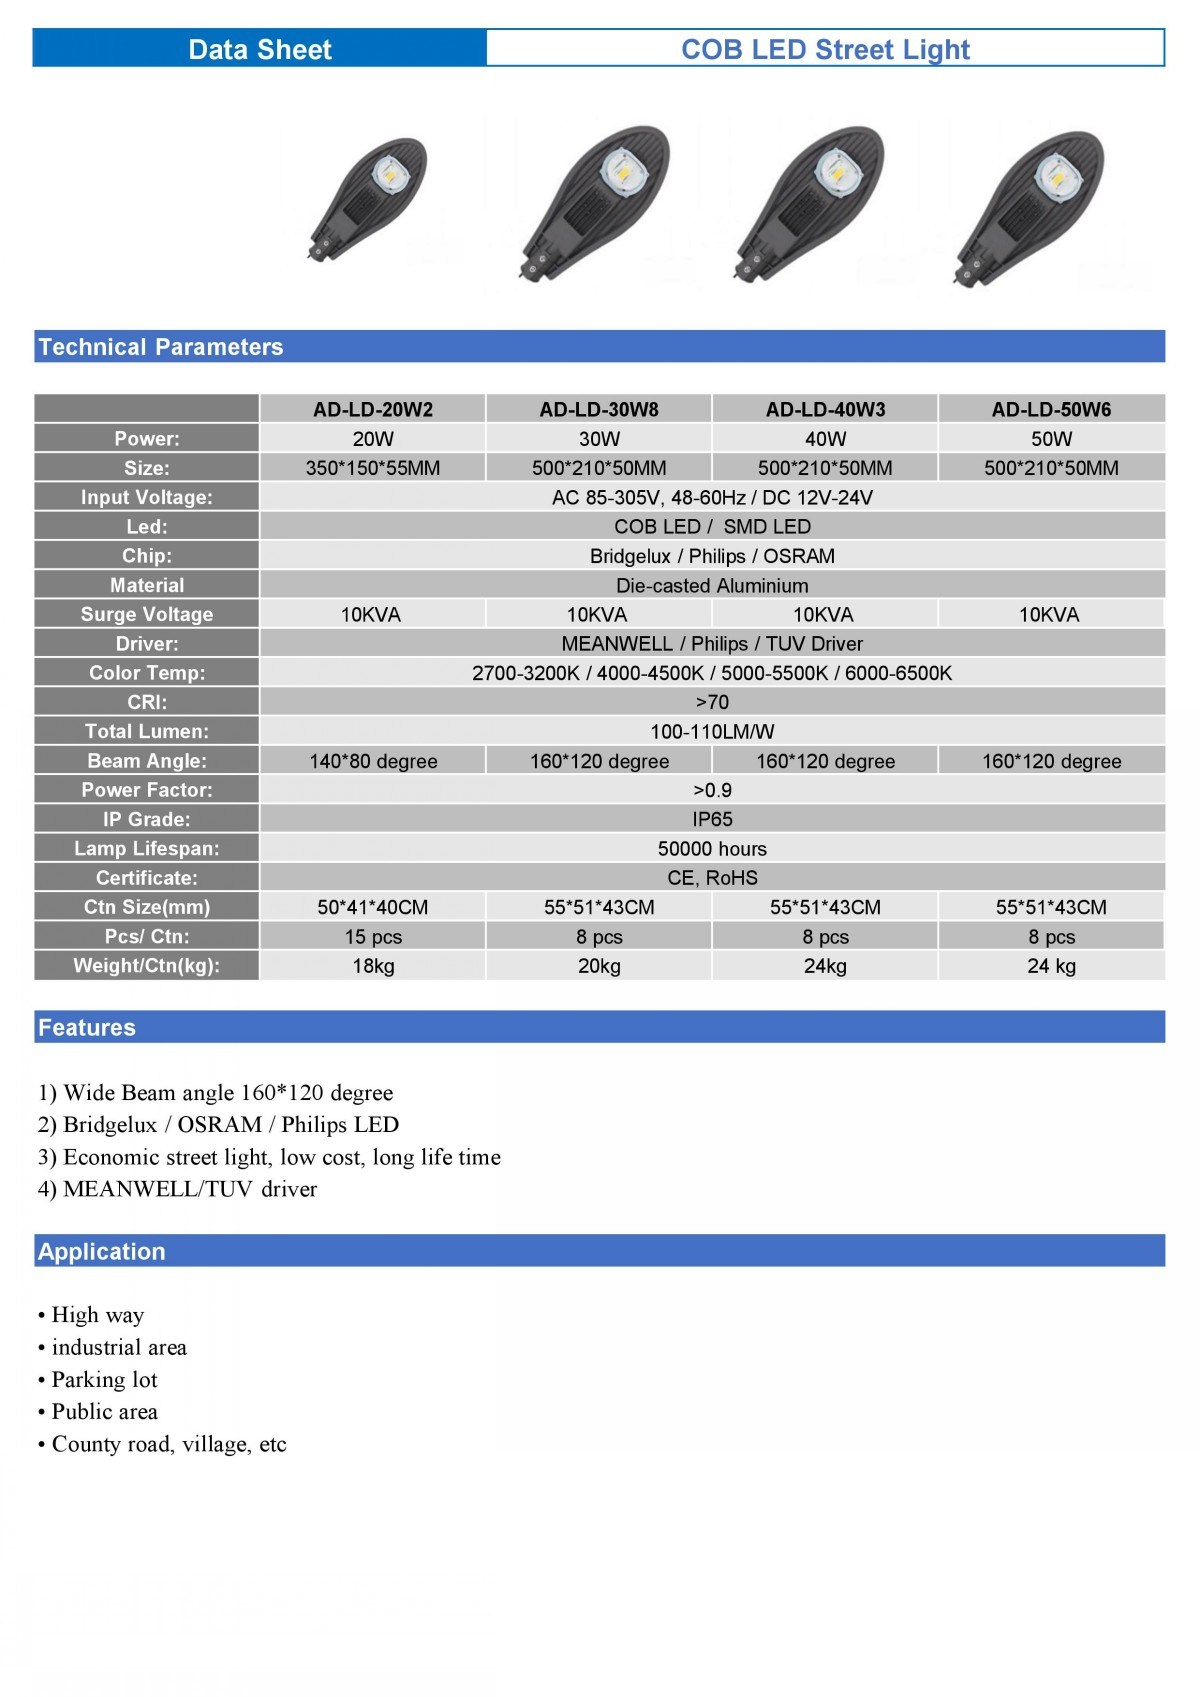 led street light COB 20-200W Data sheet (1)